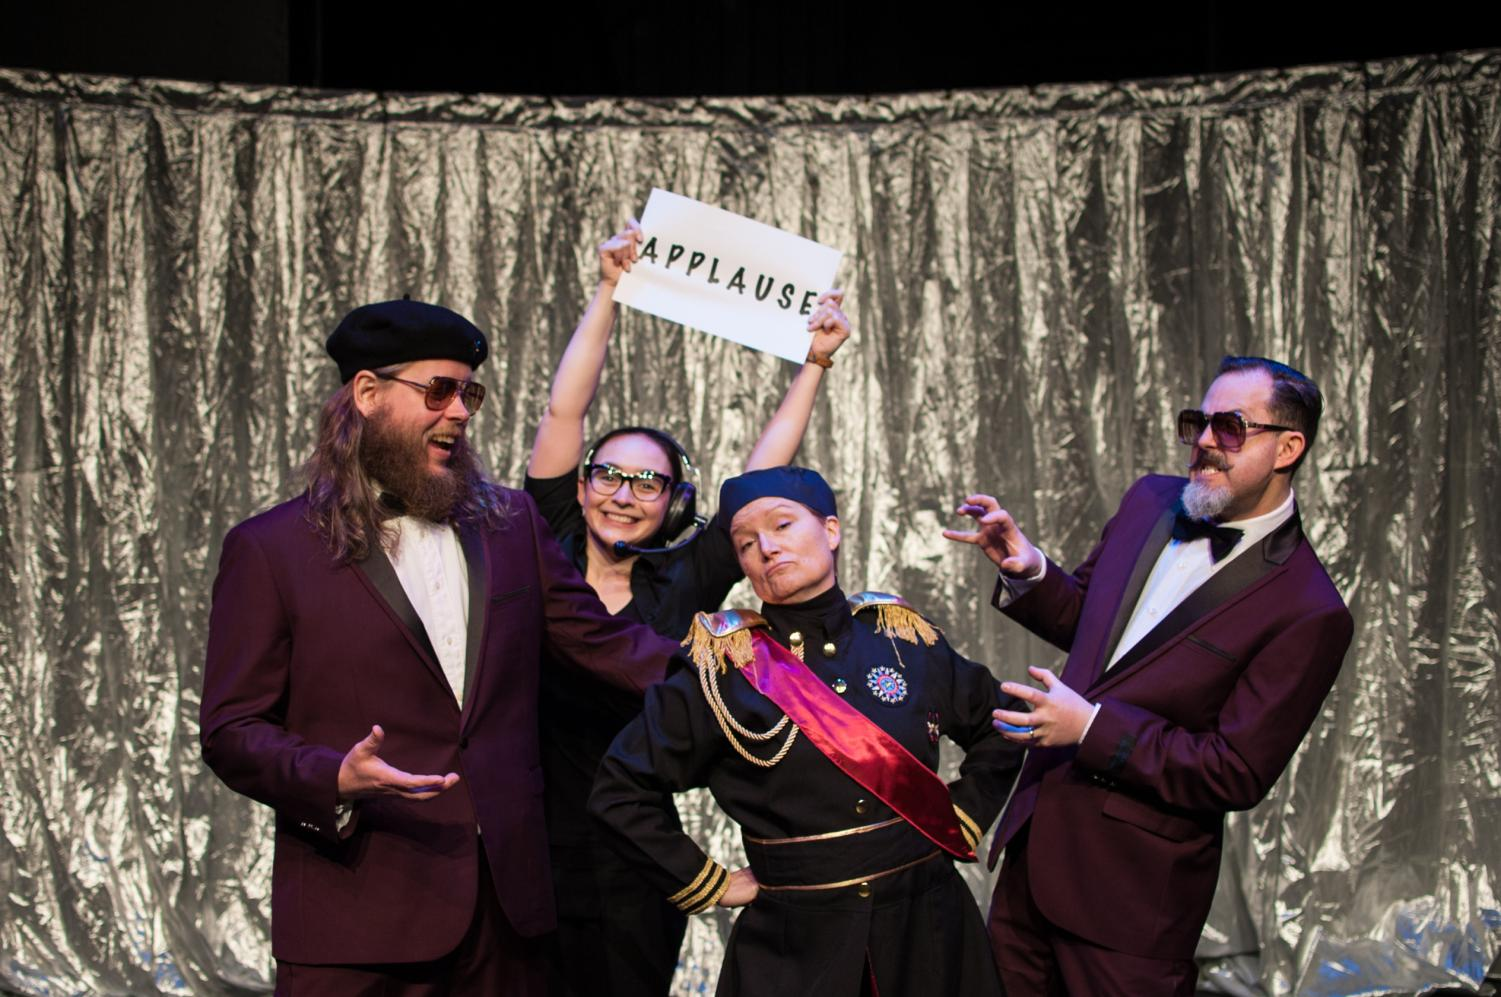 Christopher Shorr (from right) with colleagues from Touchstone Theatre James Jordan, Emma Ackerman, and Mary Wright. Photo provided by Christina Byrne.